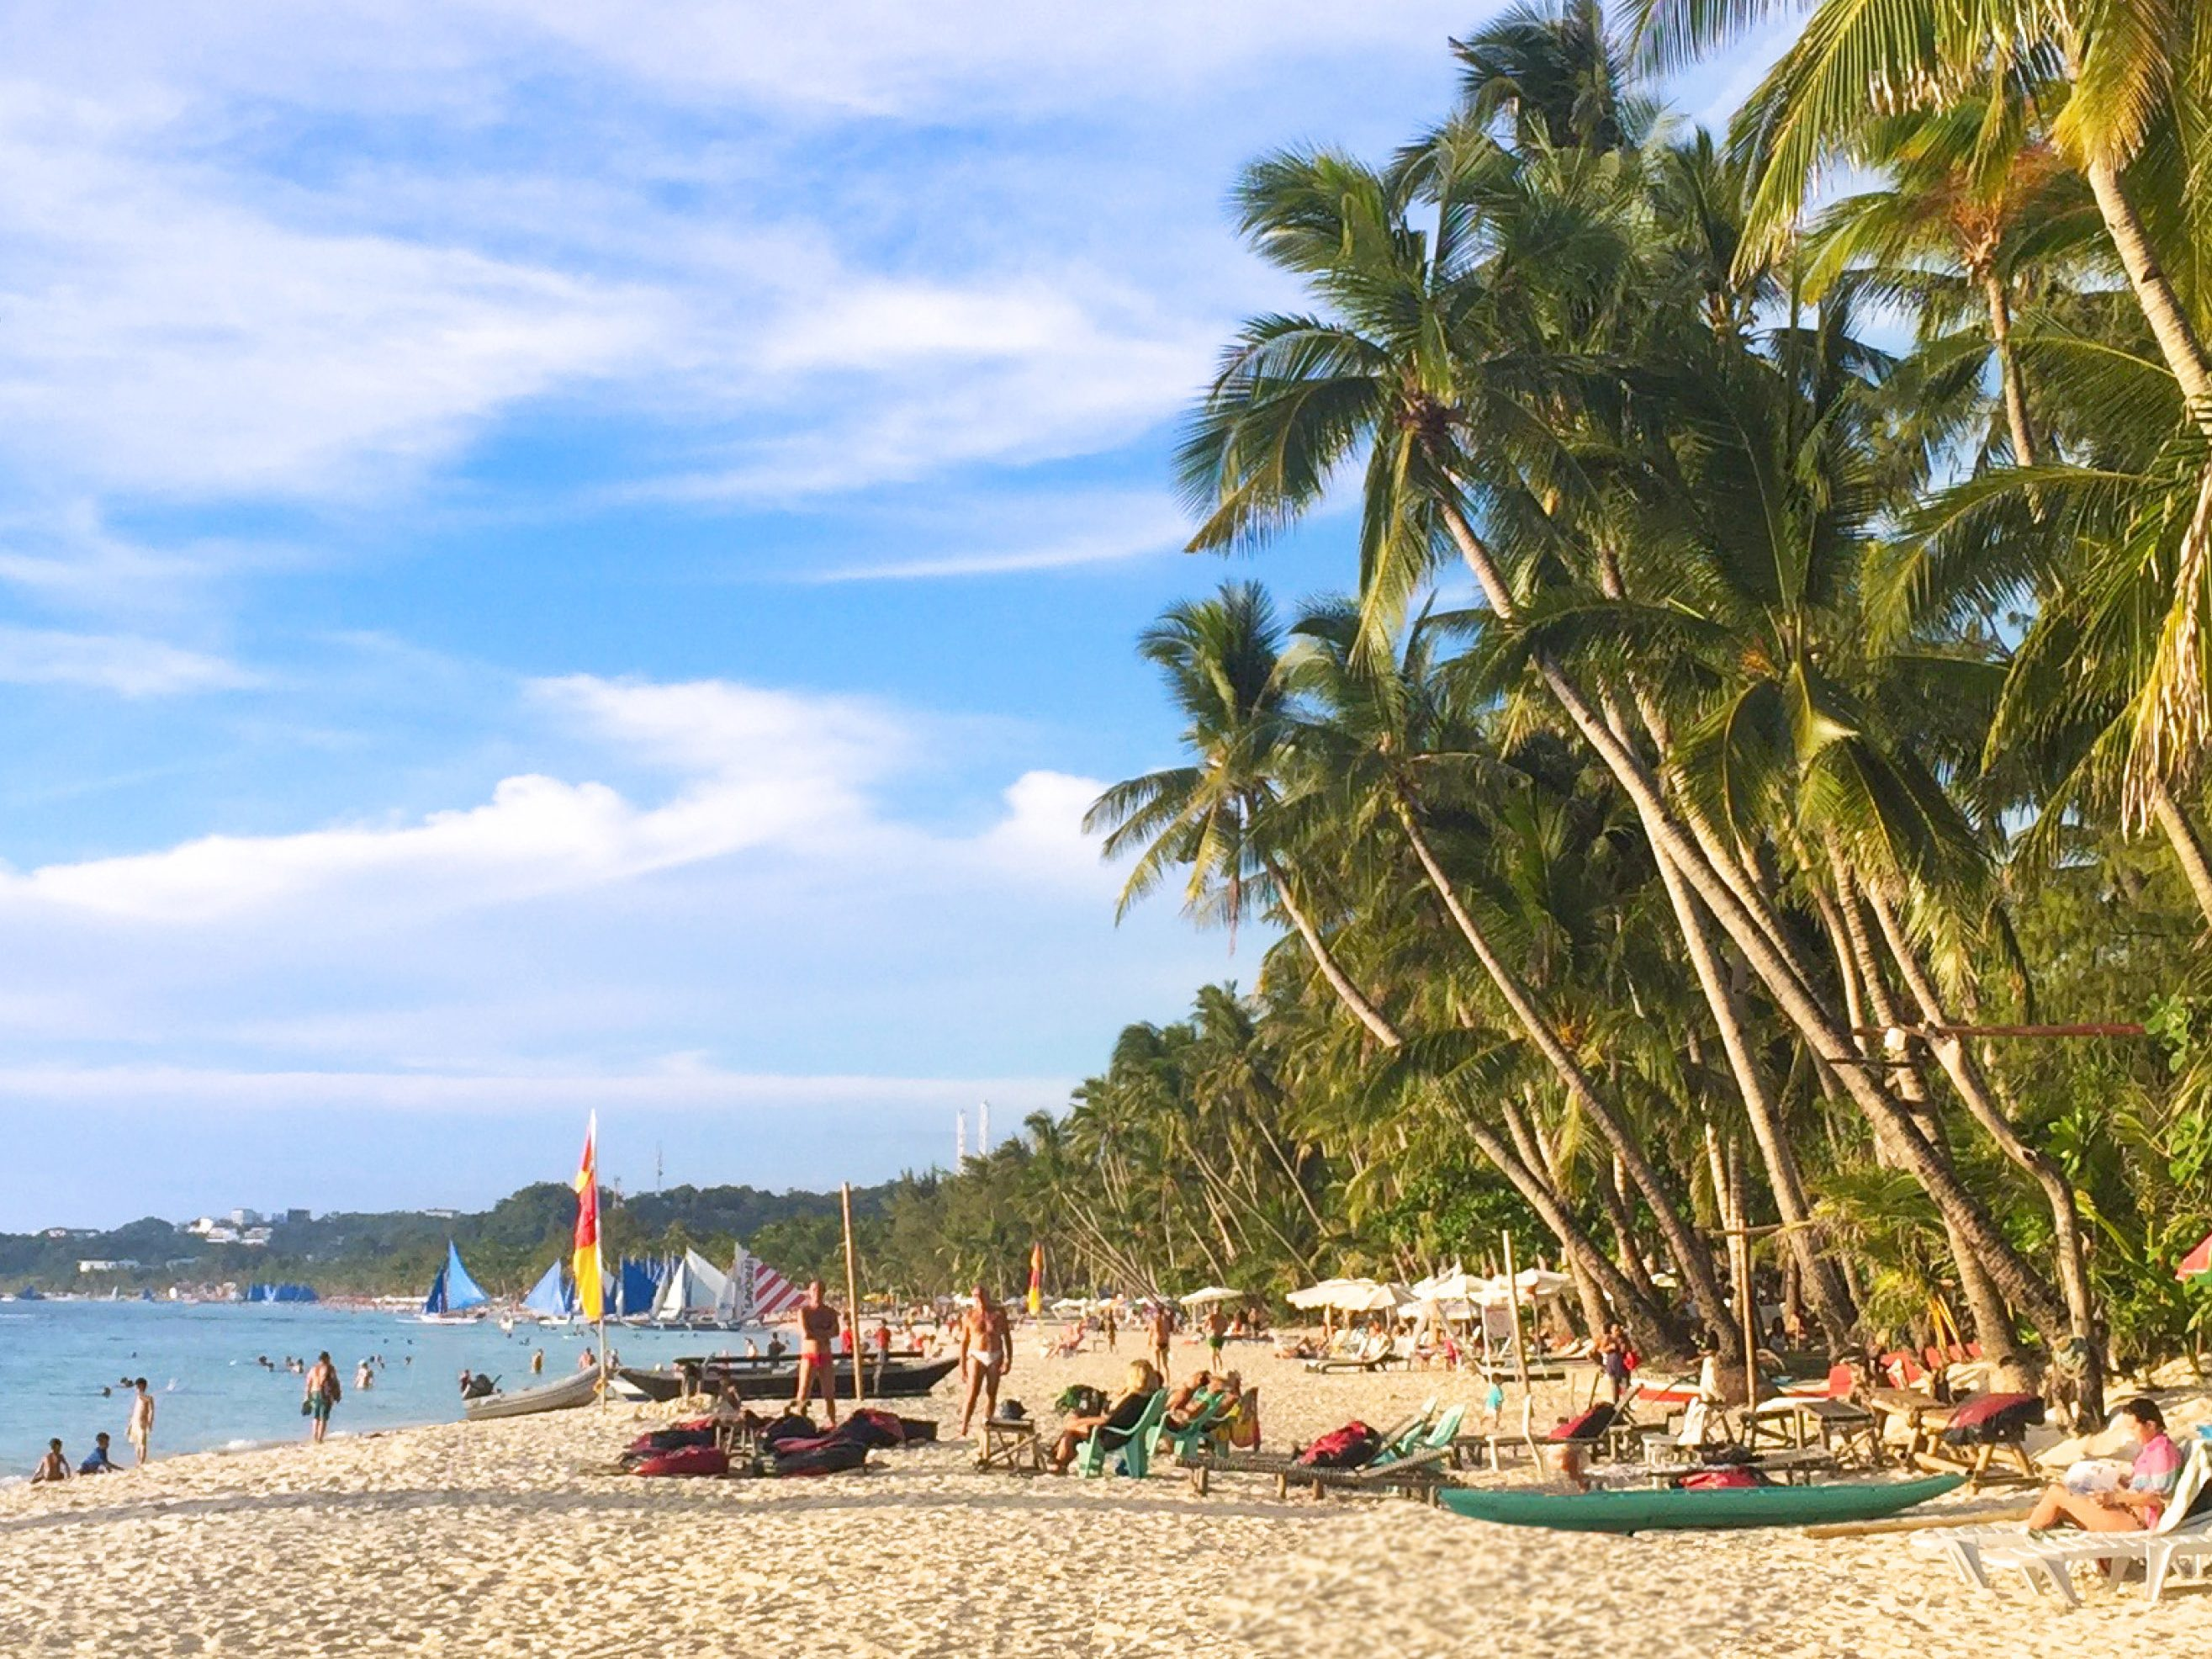 Welcome to Boracay Island